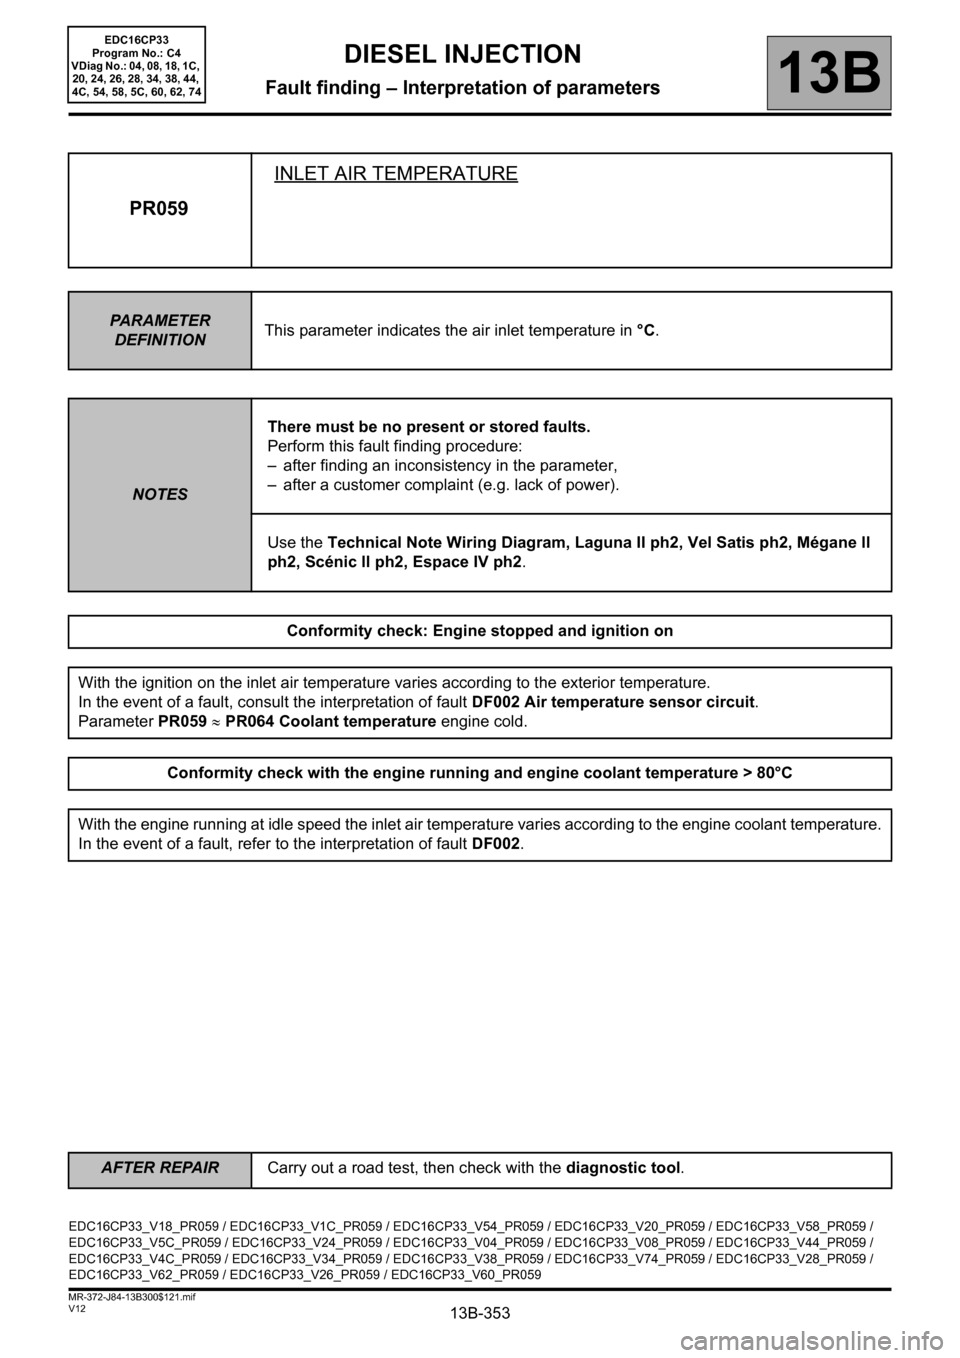 RENAULT SCENIC 2012 J95 / 3.G Engine And Peripherals EDC16CP33 Workshop Manual, Page 353